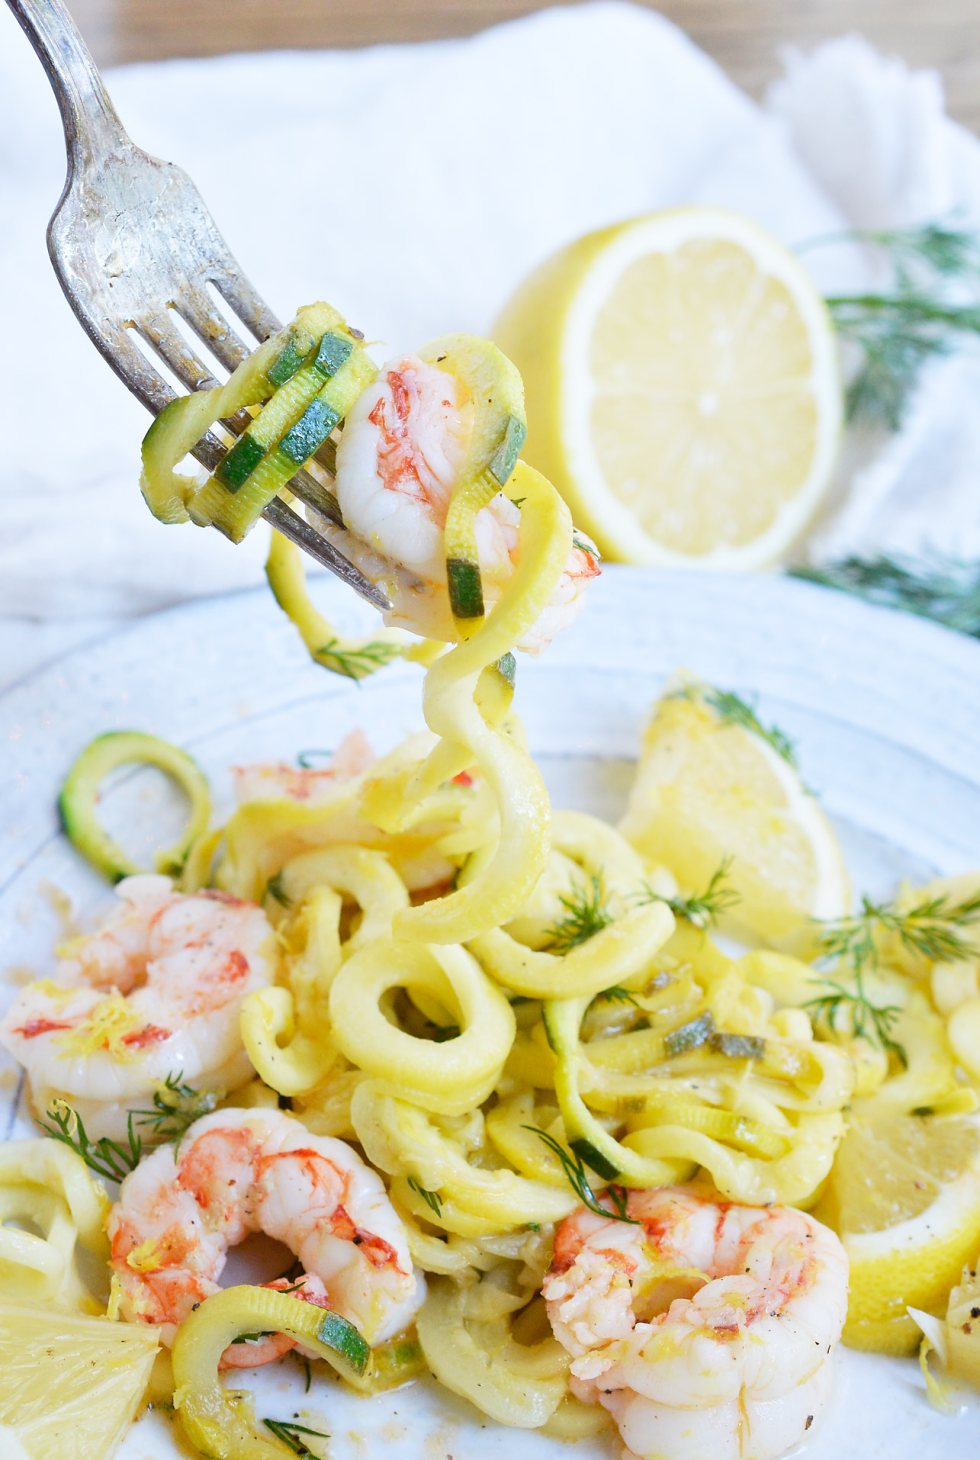 This Lemon Dill Shrimp Zucchini Noodle Recipe is a great way to start the New Year! A great lunch or dinner that is healthy, filling and Whole30 compliant. Shrimp and zoodles tossed with a lemon dill sauce makes a flavorful, nutritious meal with just 5 ingredients!